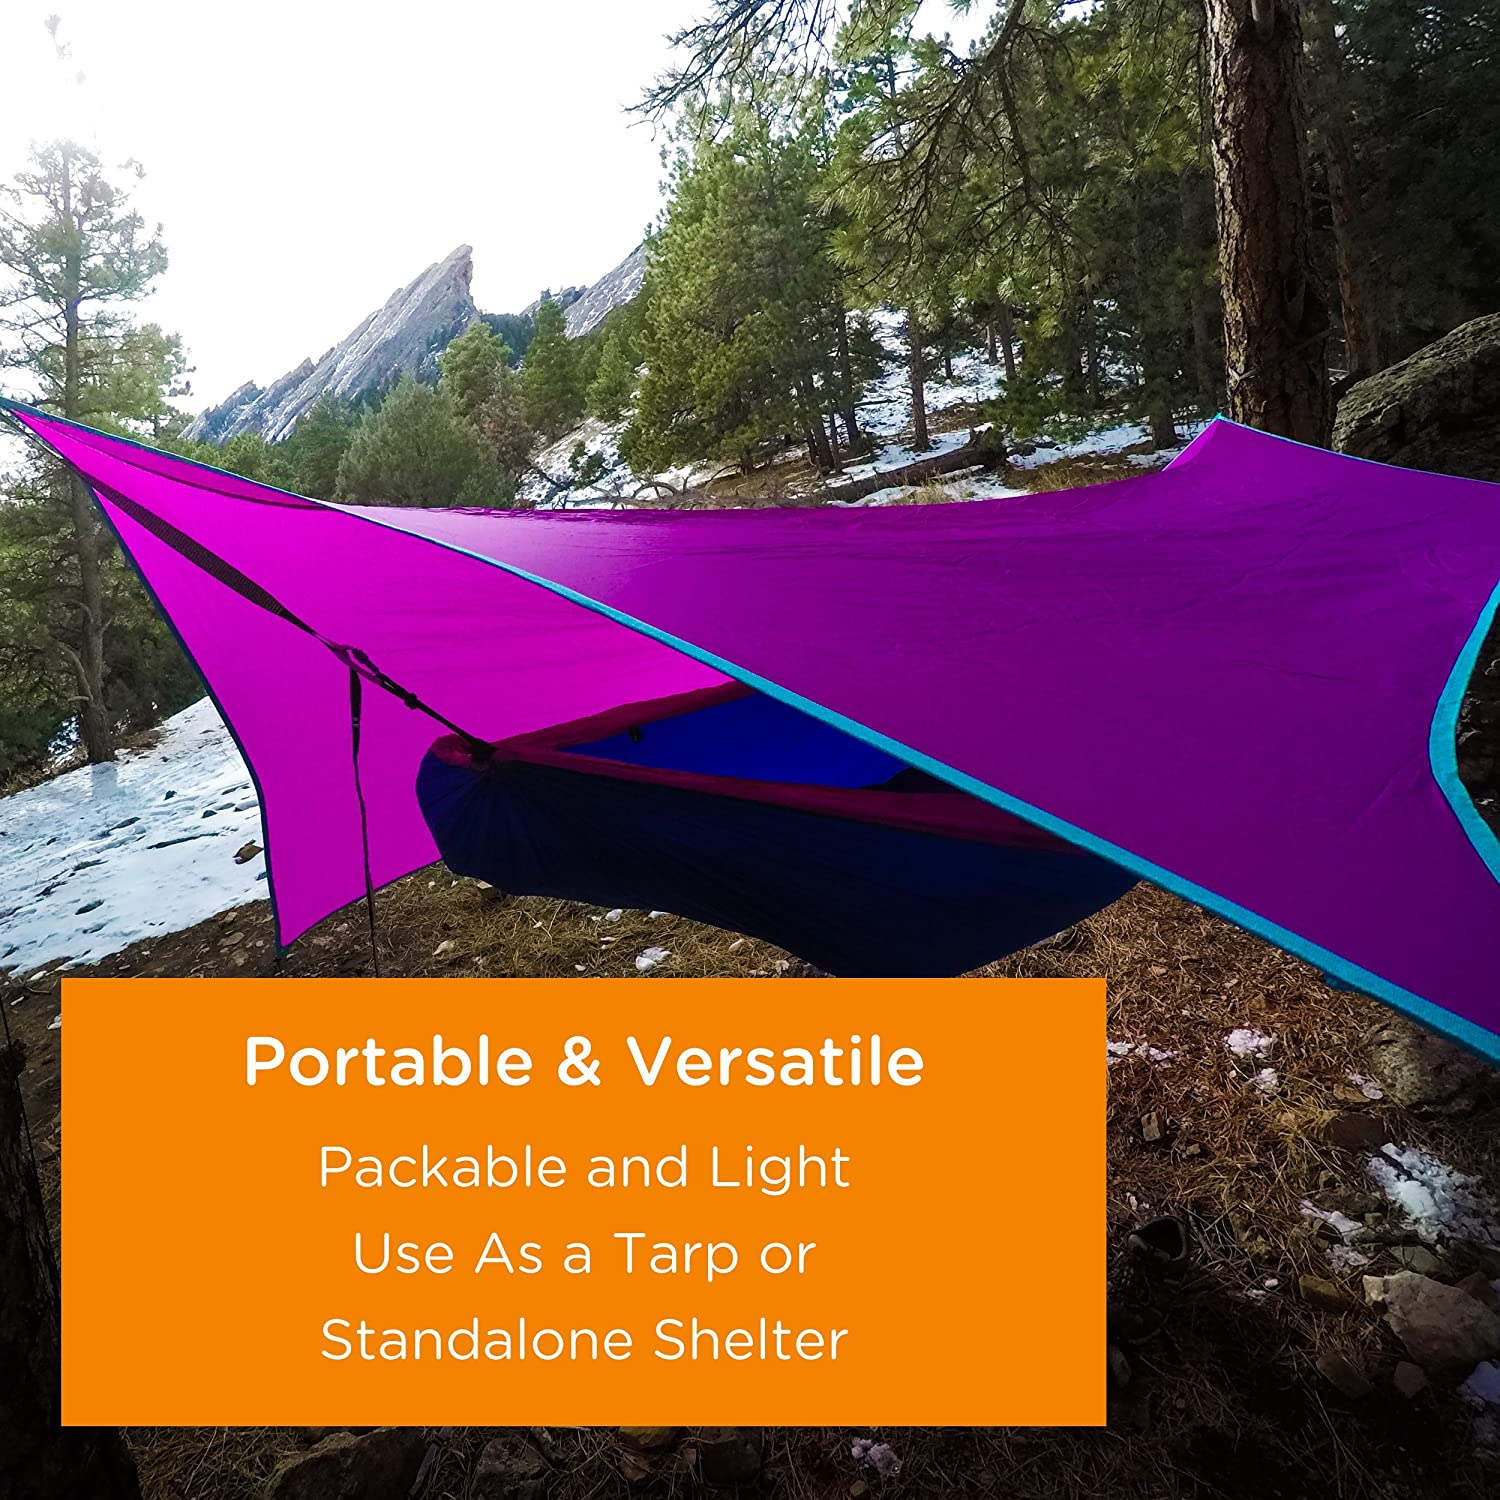 Teal//Purple Serac #1 Hammock and Tent Tarp Ultralight Hammock Rain Fly and Shelter Perfect for Waterproof Camping, Lightweight Backpacking and Portable for Travel by Lightweight Backpacking and Portable for Travel